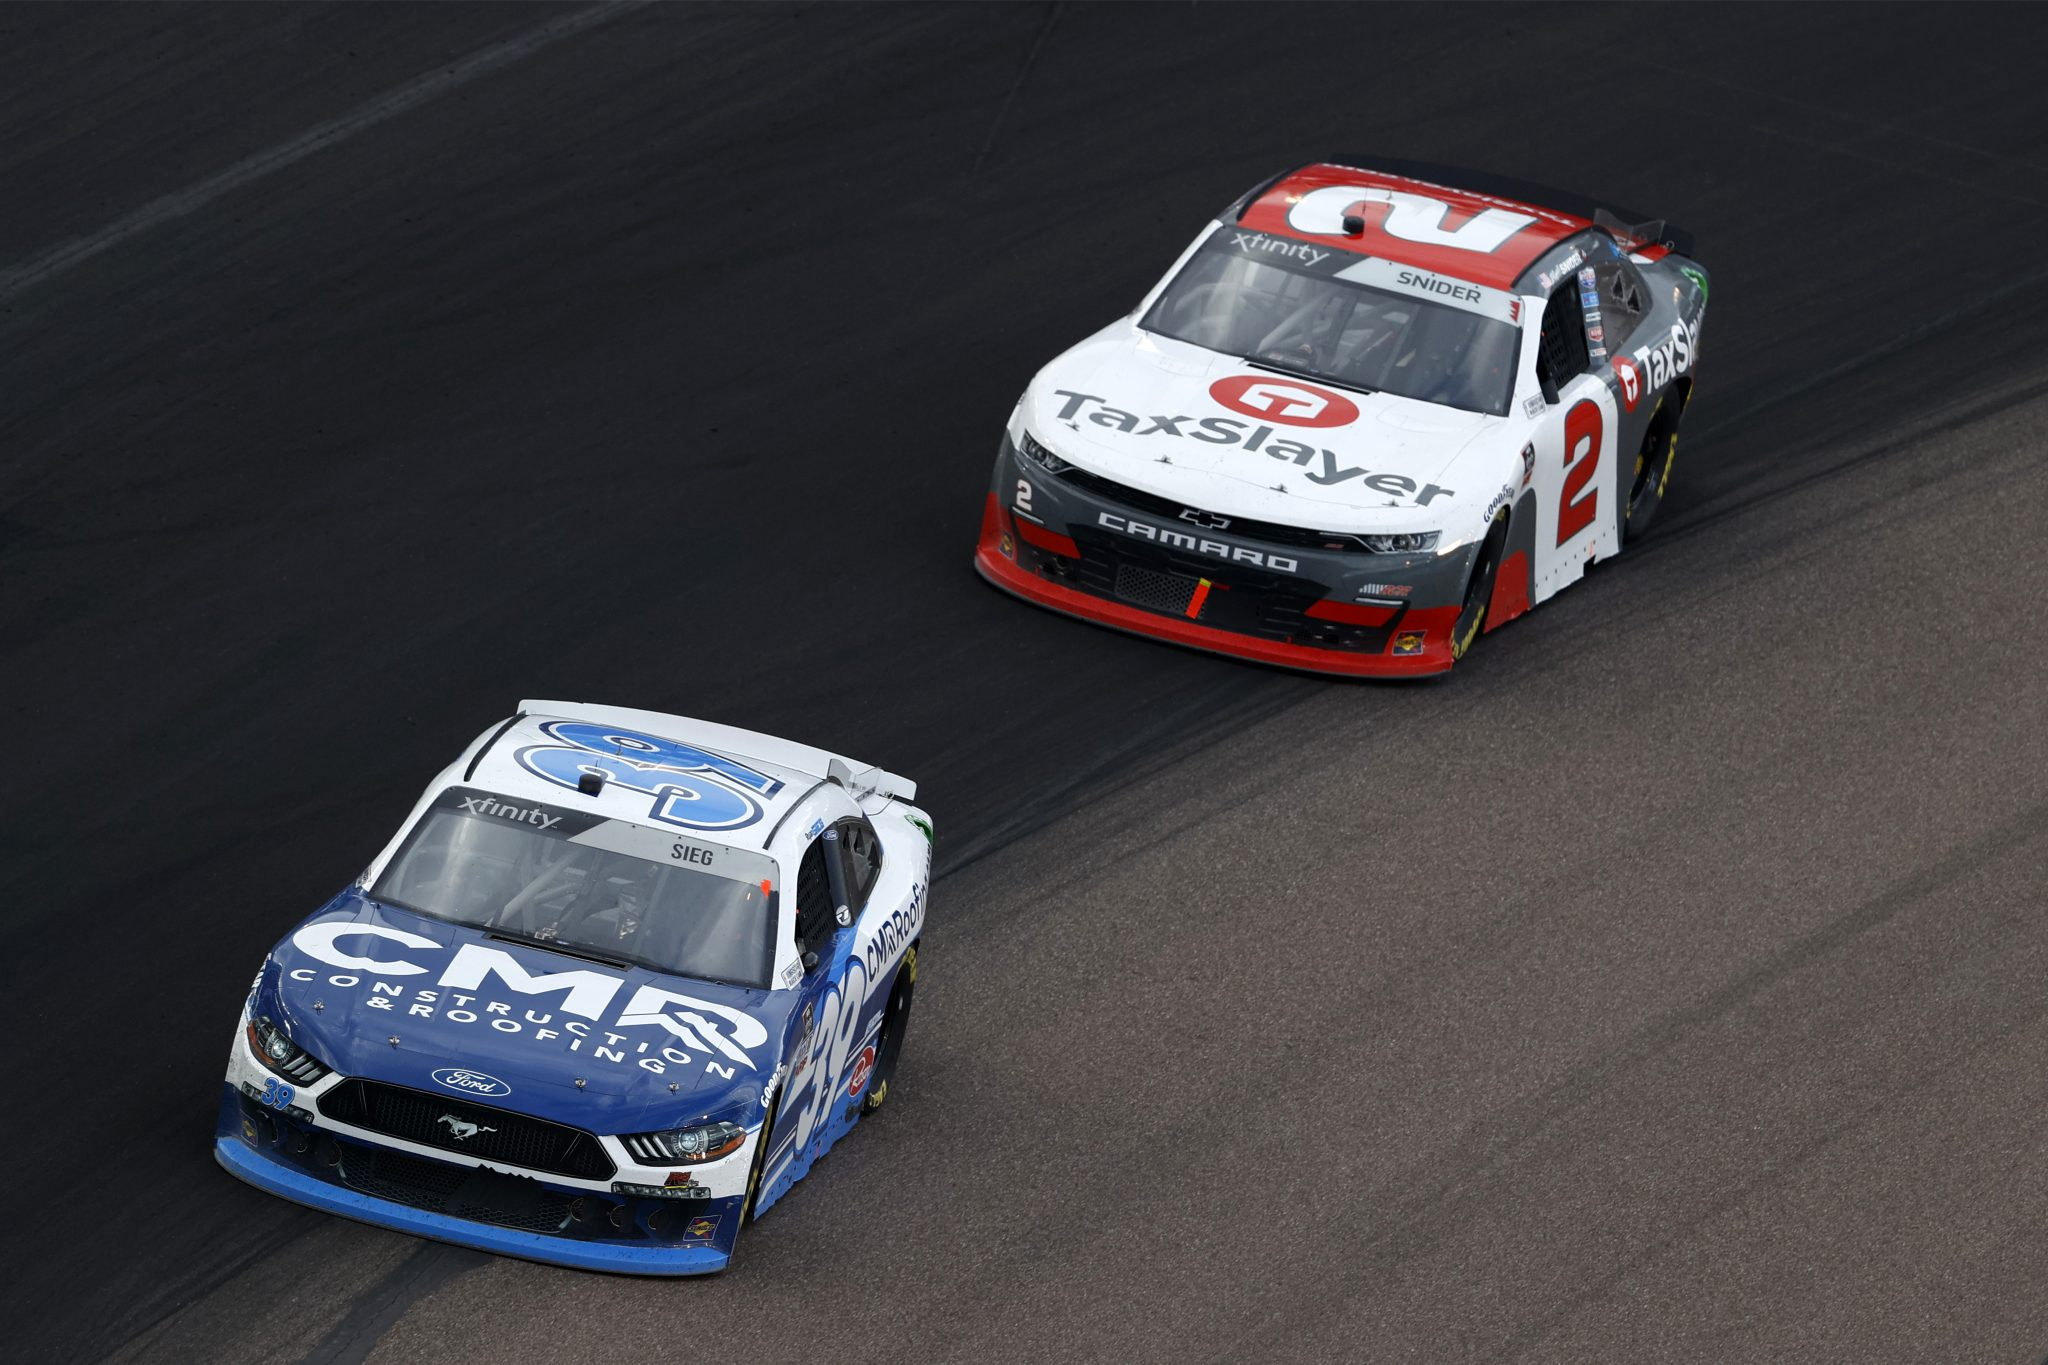 AVONDALE, ARIZONA - MARCH 13: Ryan Sieg, driver of the #39 CMR Construction and Roofing Ford, and Myatt Snider, driver of the #2 TaxSlayer Chevrolet, race during the NASCAR Xfinity Series Call 811 Before You Dig 200 presented by Arizona 811 at Phoenix Raceway on March 13, 2021 in Avondale, Arizona. (Photo by Christian Petersen/Getty Images) | Getty Images